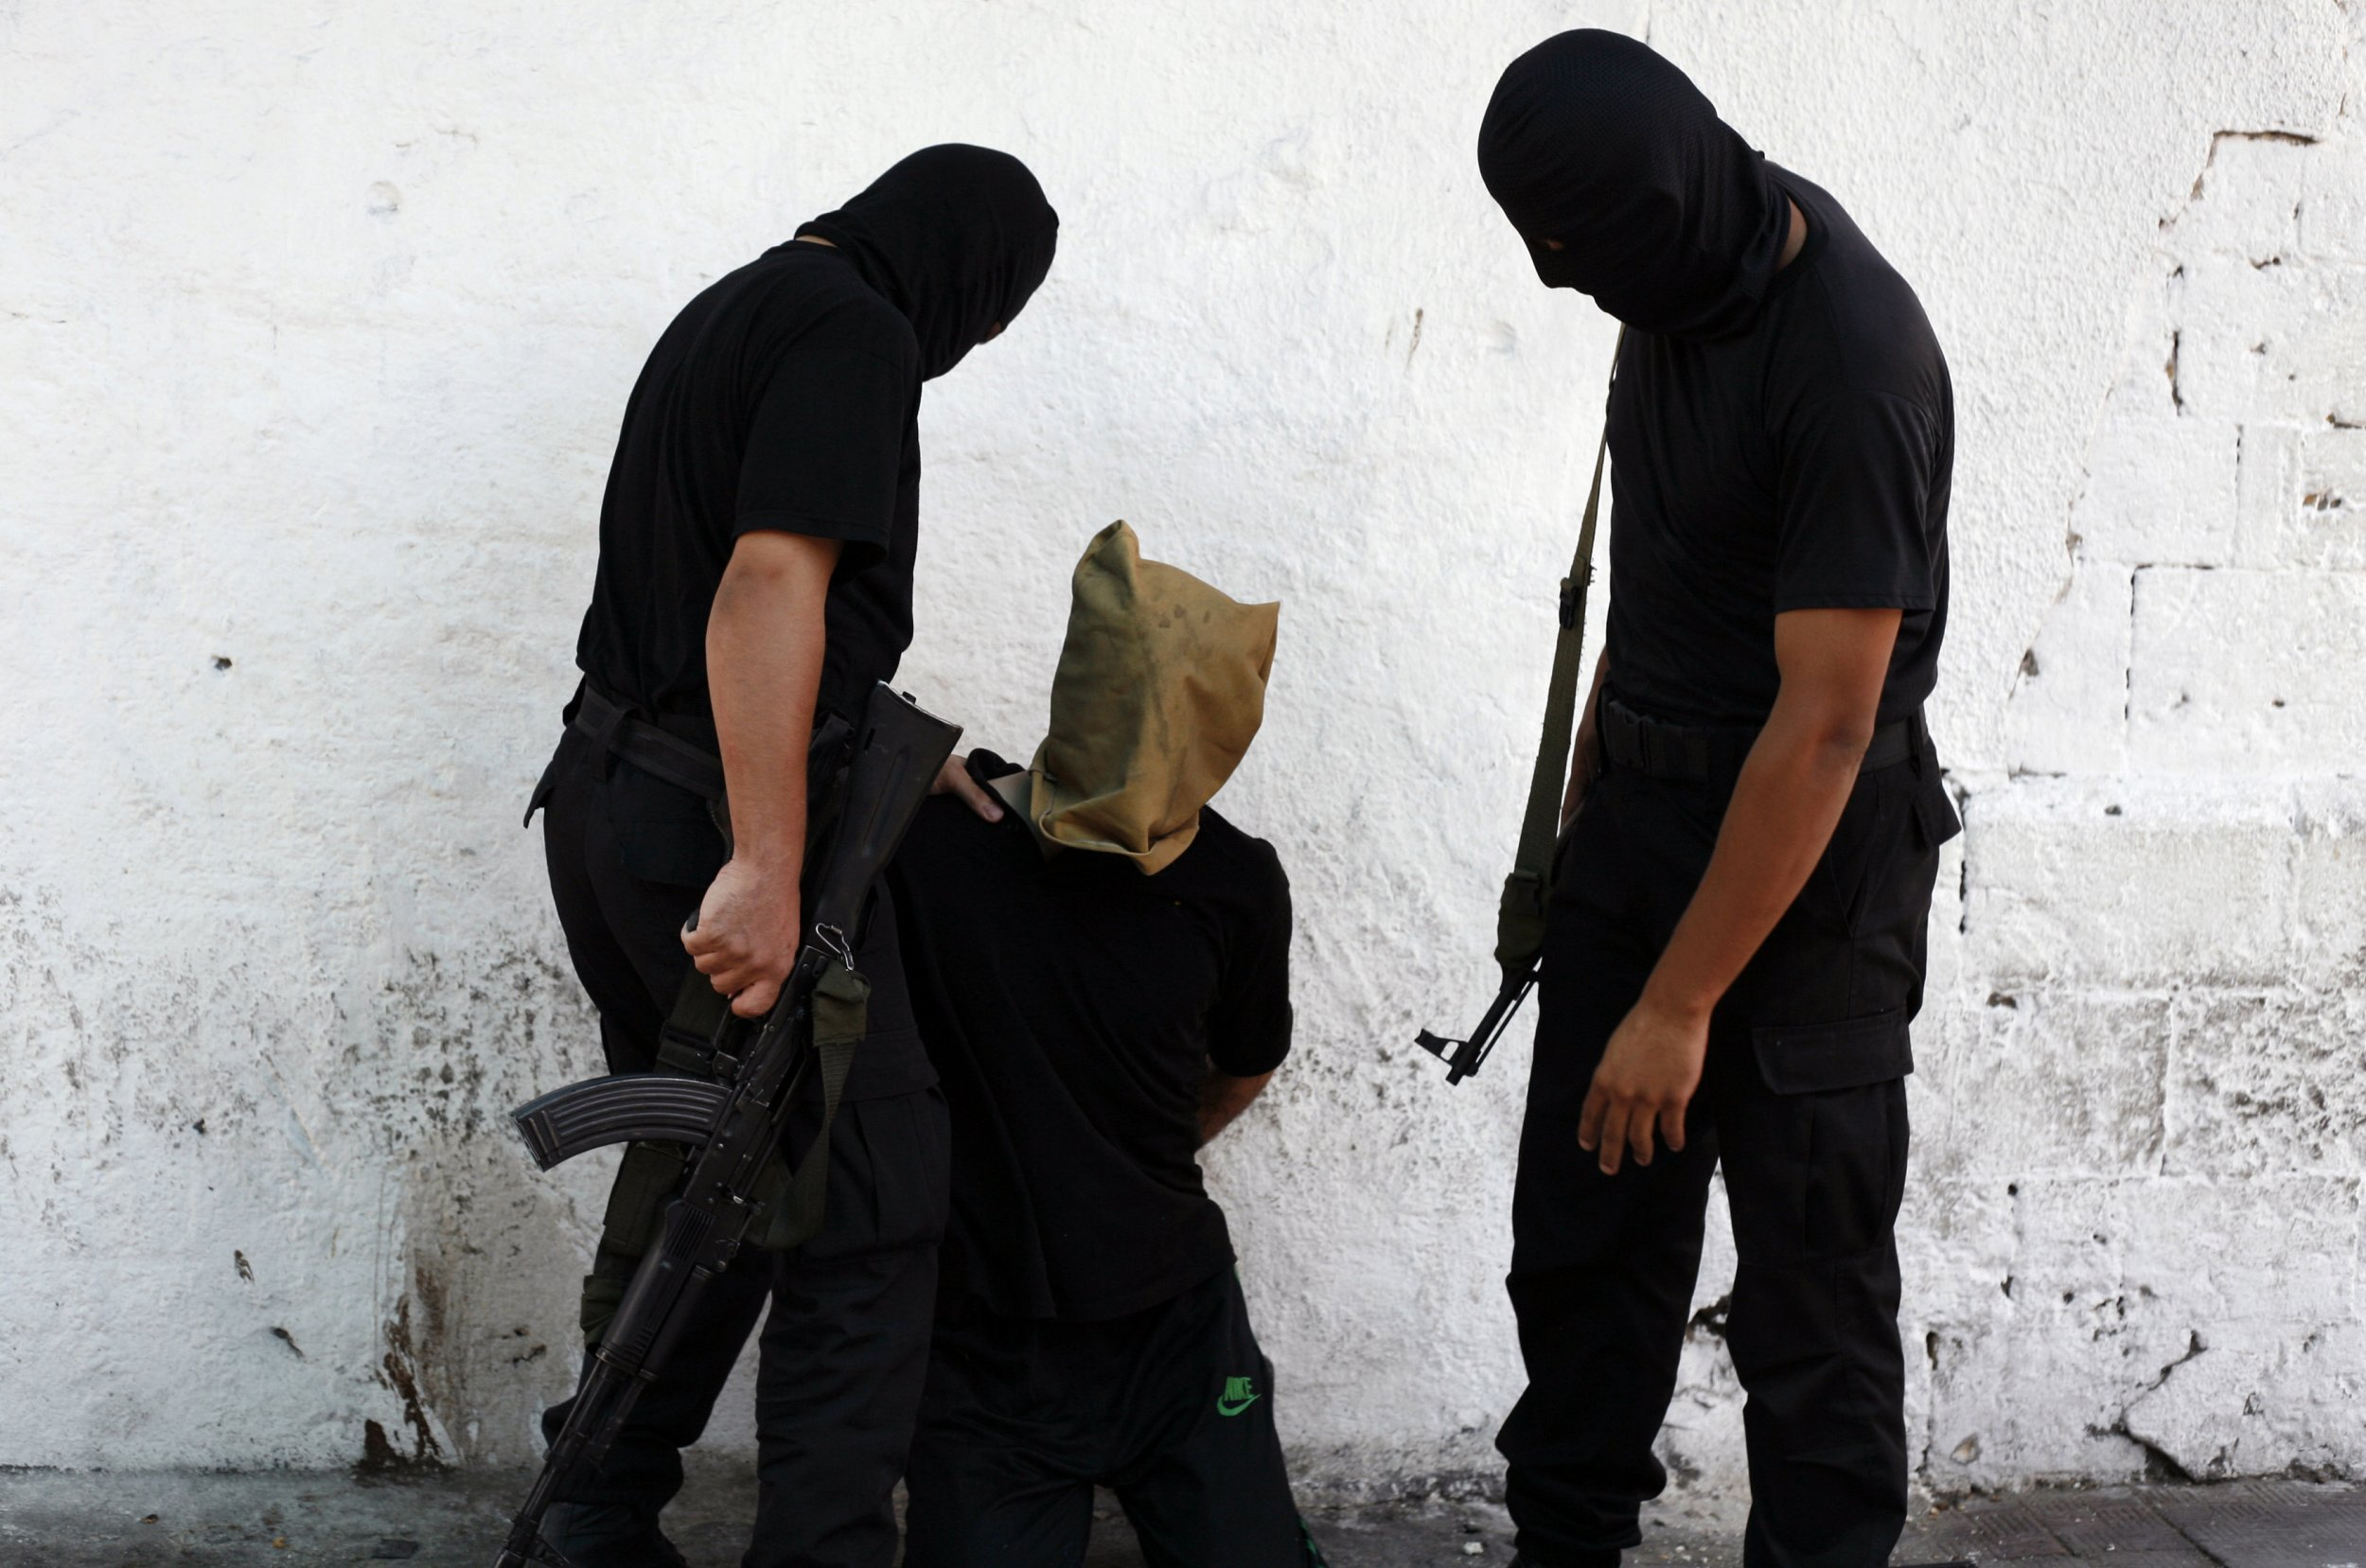 Hamas militants before execution